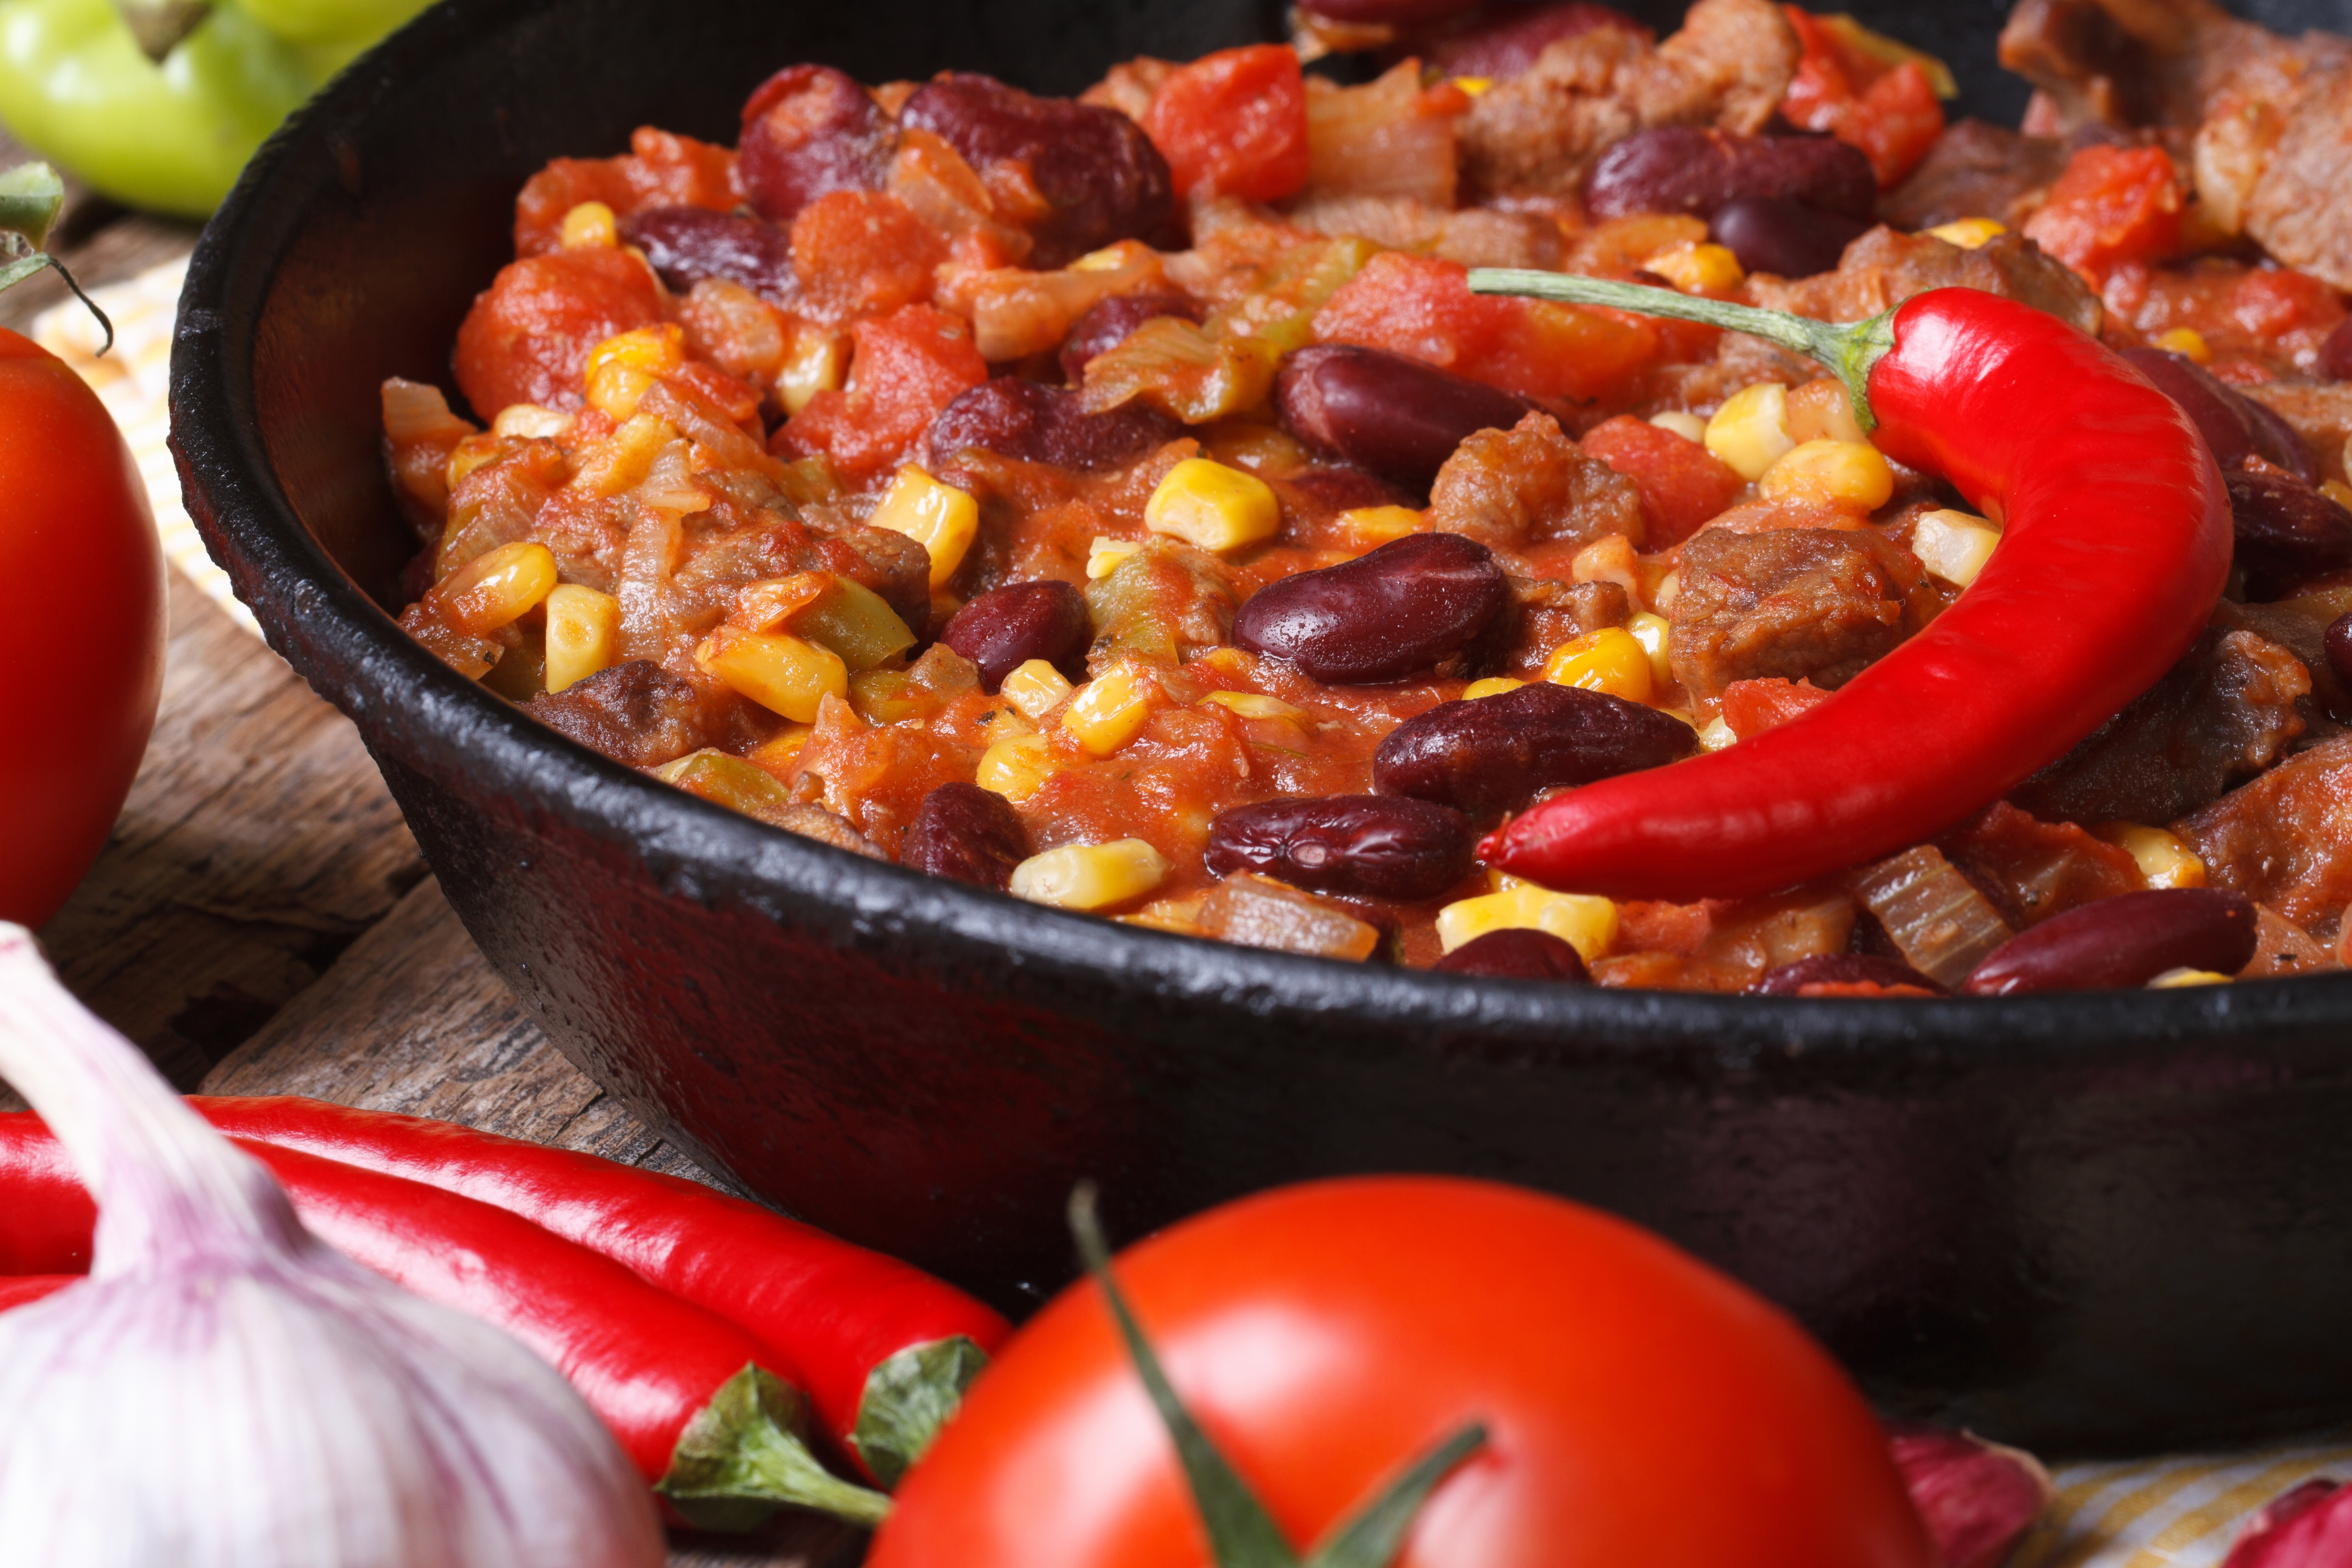 Mexican chili con carne in a pan on a wooden